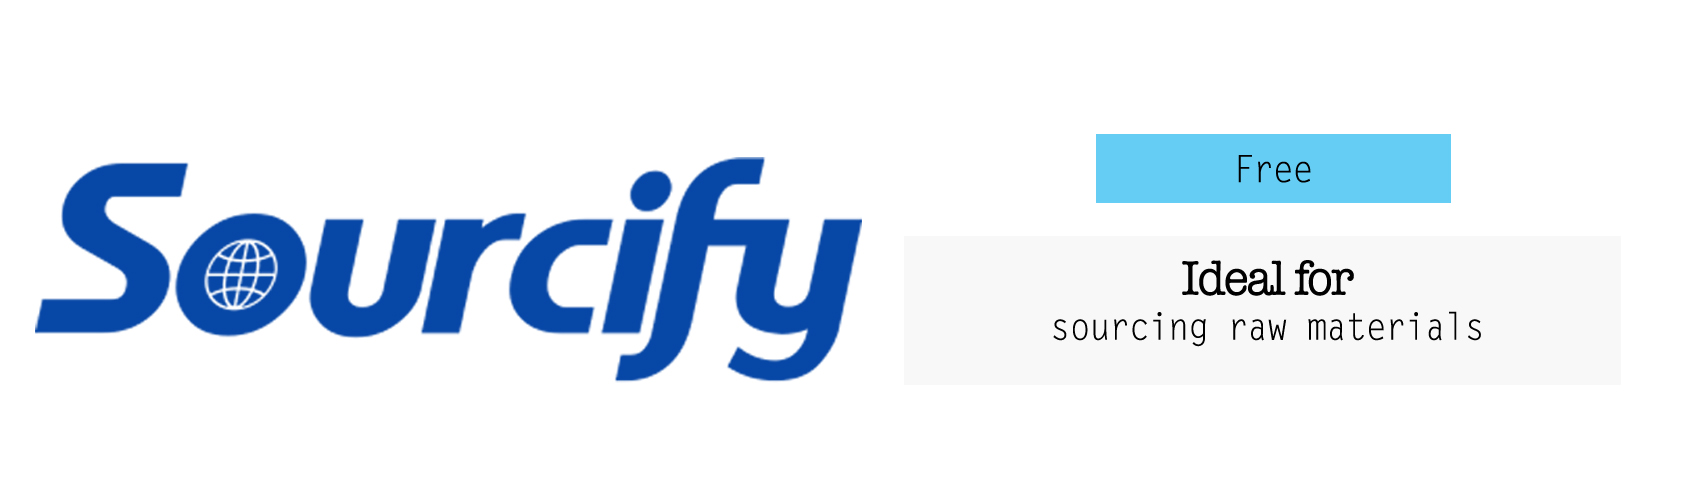 sourcify raw materials